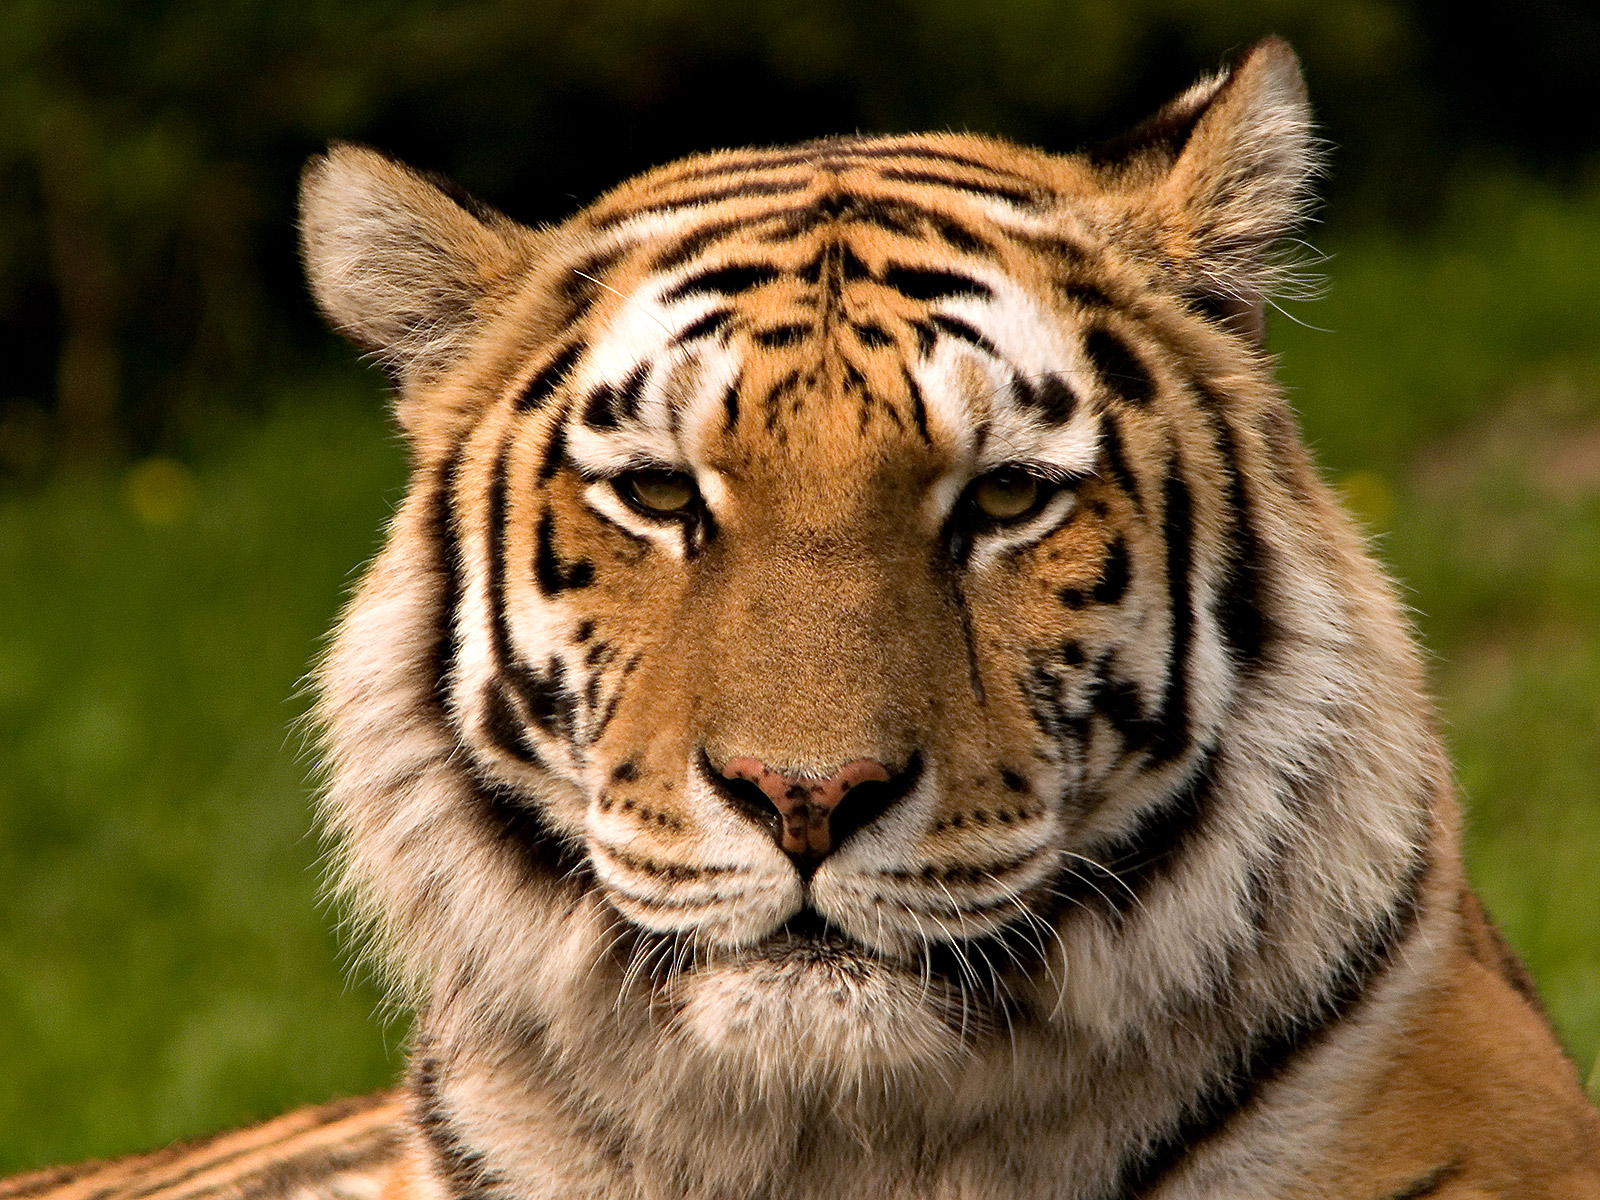 File:Siberischer tiger de edit02.jpg